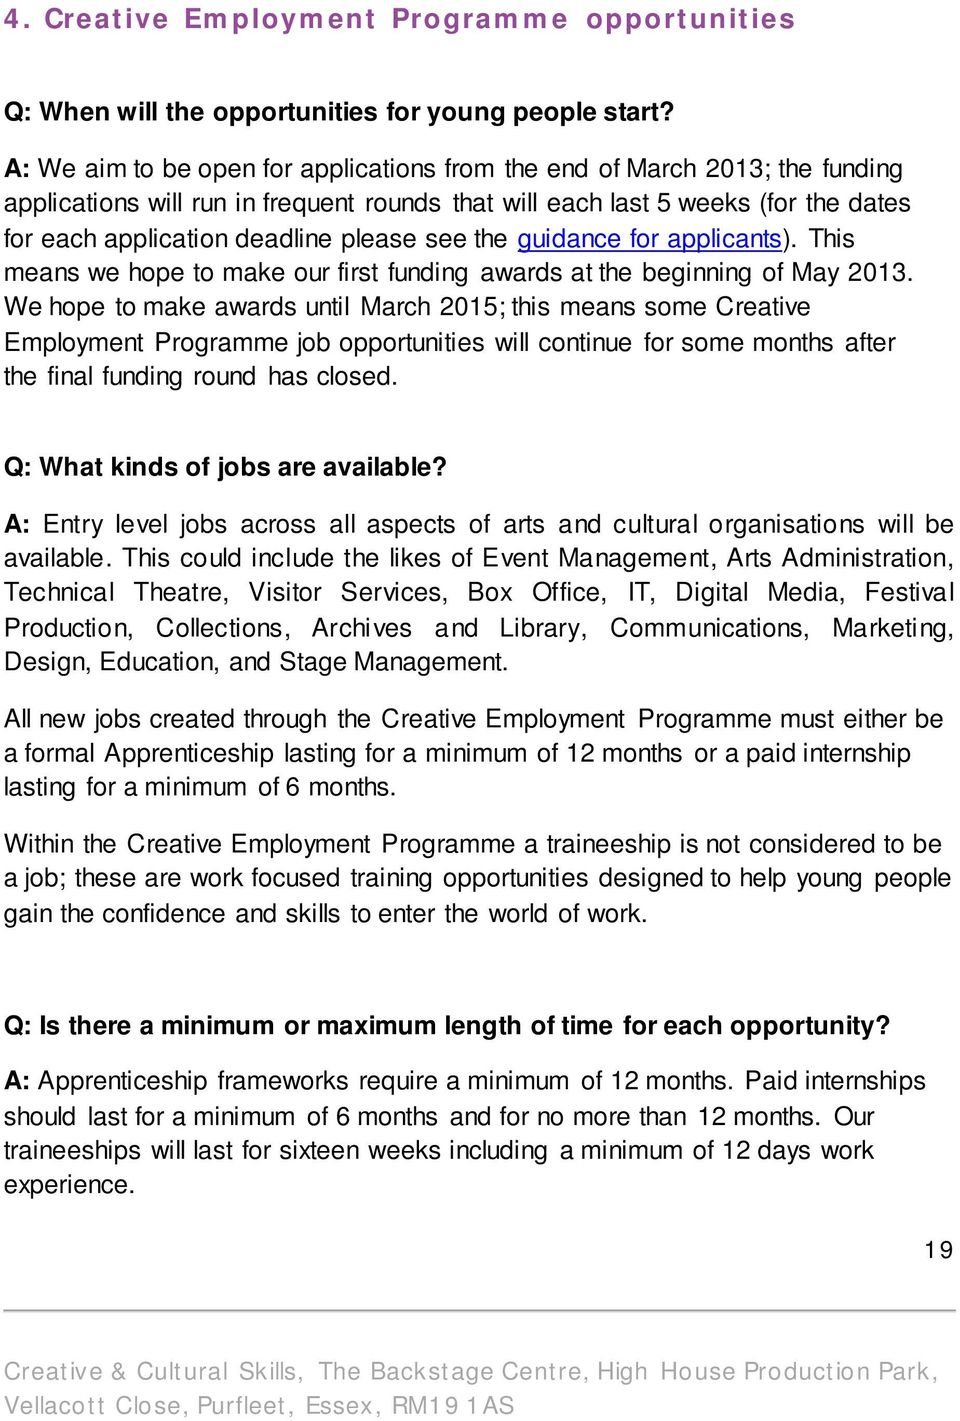 see the guidance for applicants). This means we hope to make our first funding awards at the beginning of May 2013.